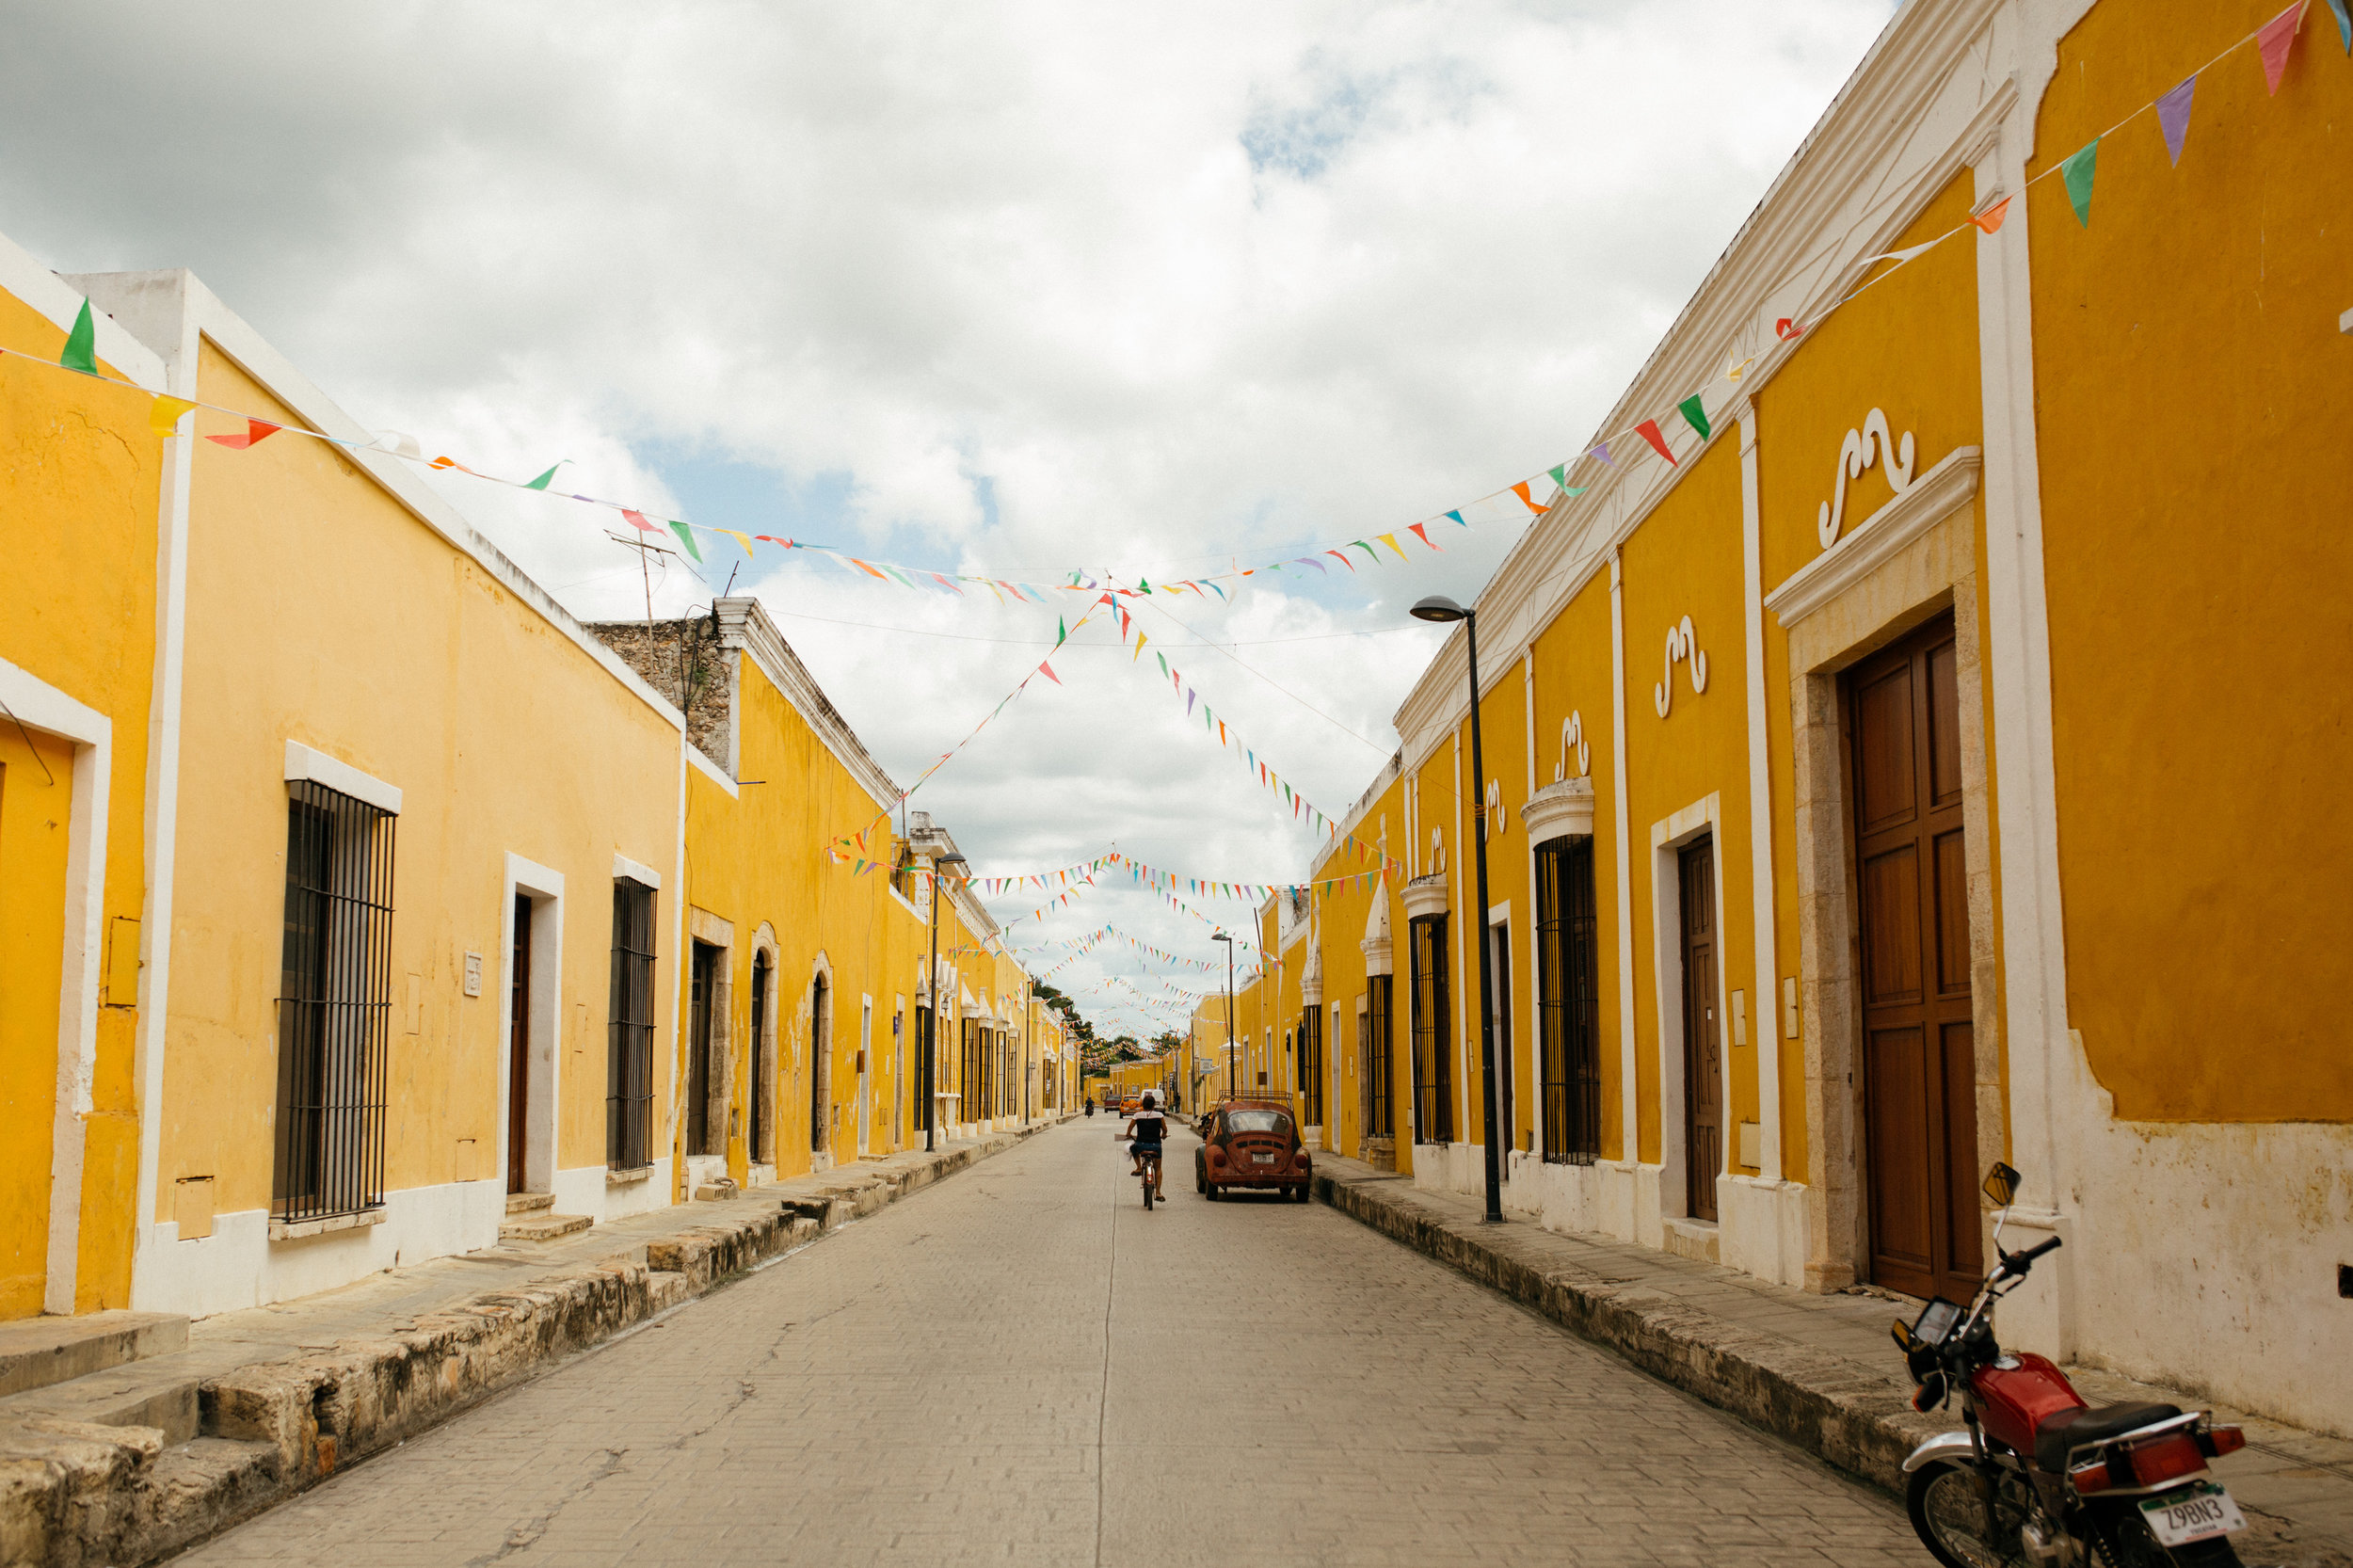 Travel Photography 2017 // Sandy Noto // Izamal, Mexico